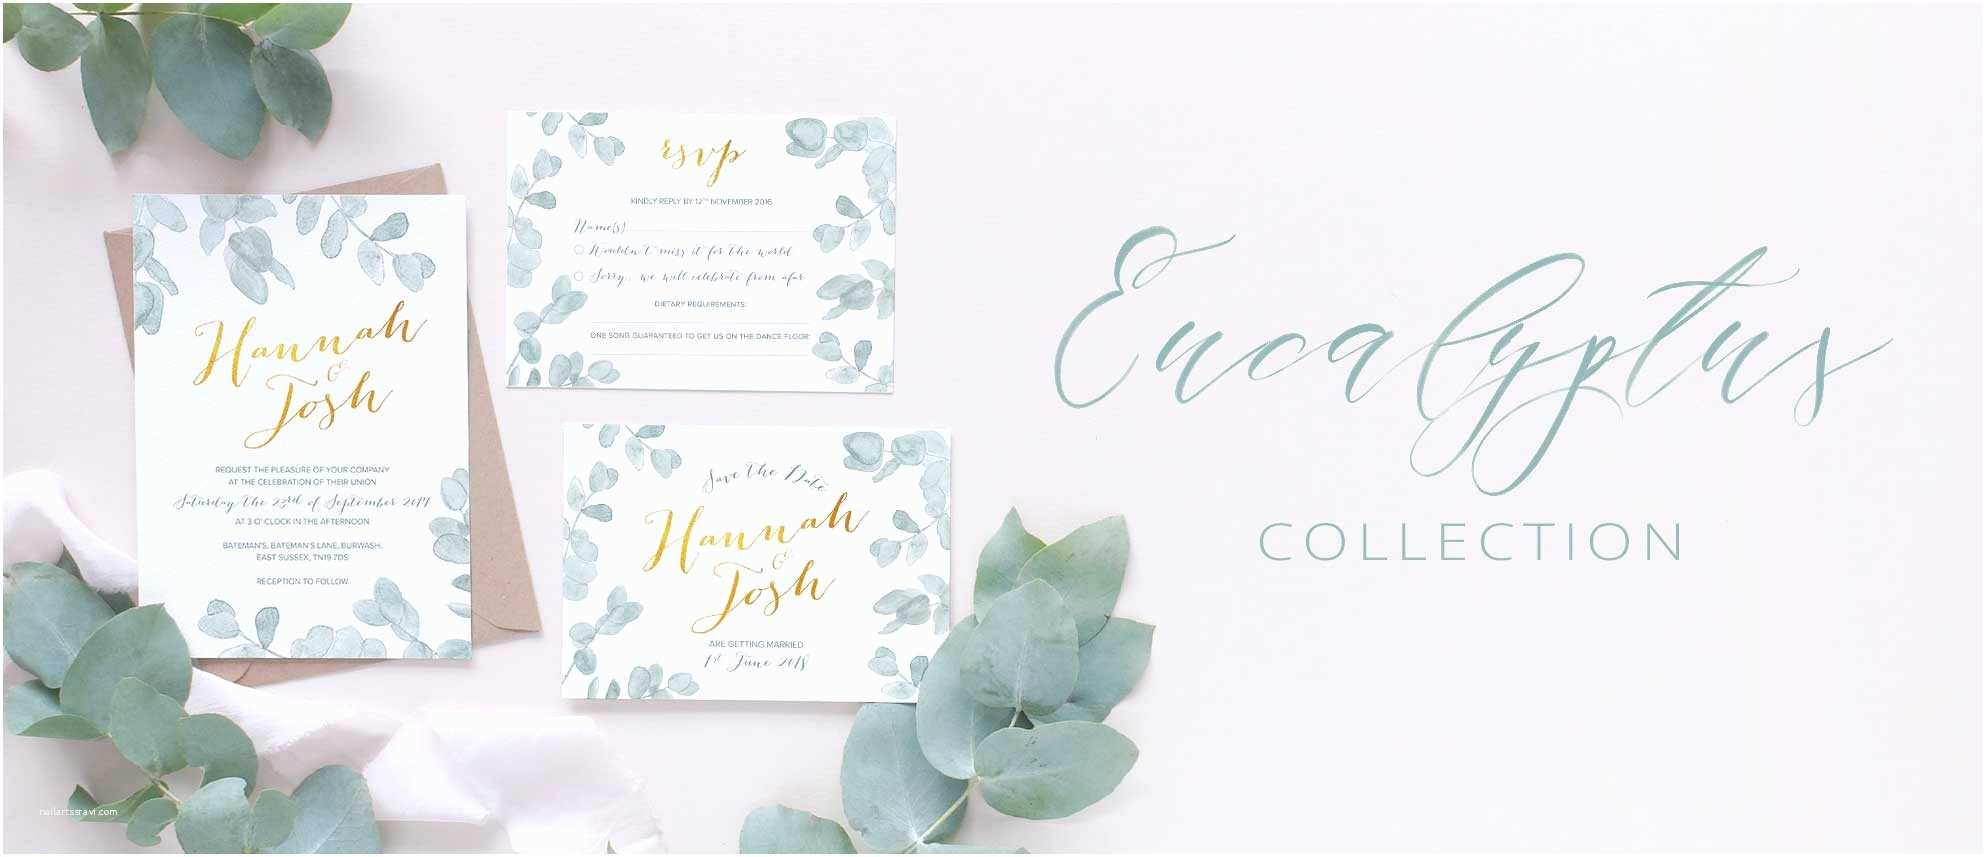 Eucalyptus Wedding Invitations Eucalyptus Leaves Wedding Invitation Collection – Blush